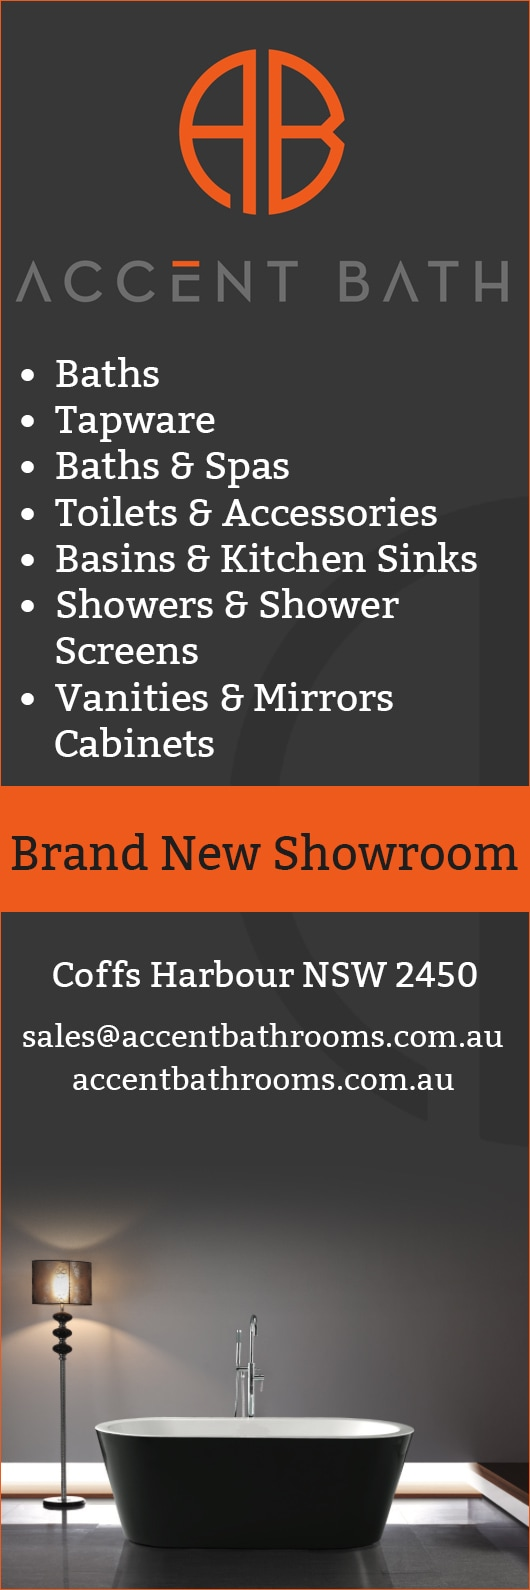 Bathroom showers direct - Bathrooms And Showers Direct Discount Code Bathroom And Showers Direct Discount Code Accent Bathroom Kitchen